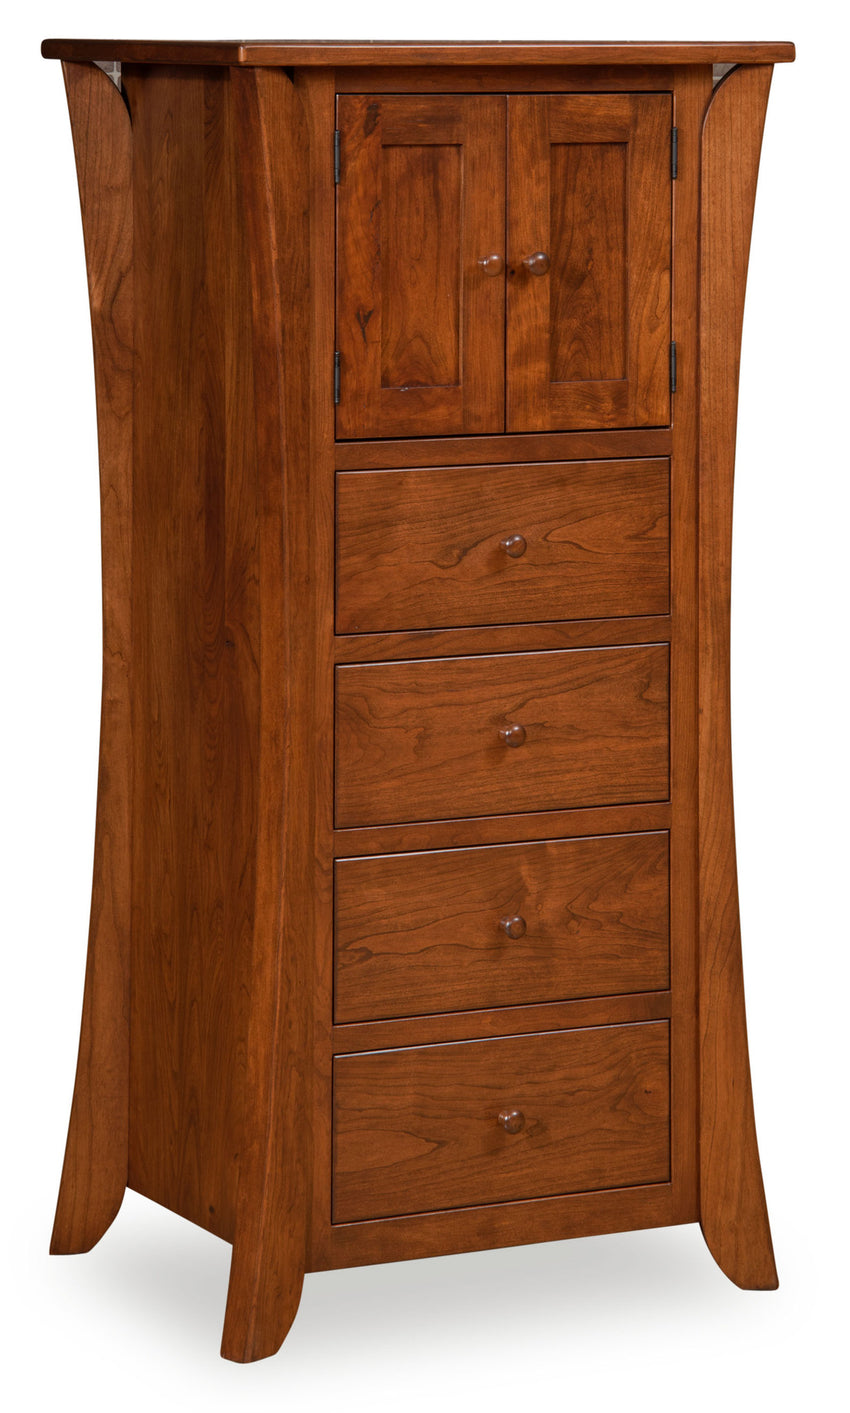 Caledonia Lingerie Chest, 4 Drawer, 2 Door